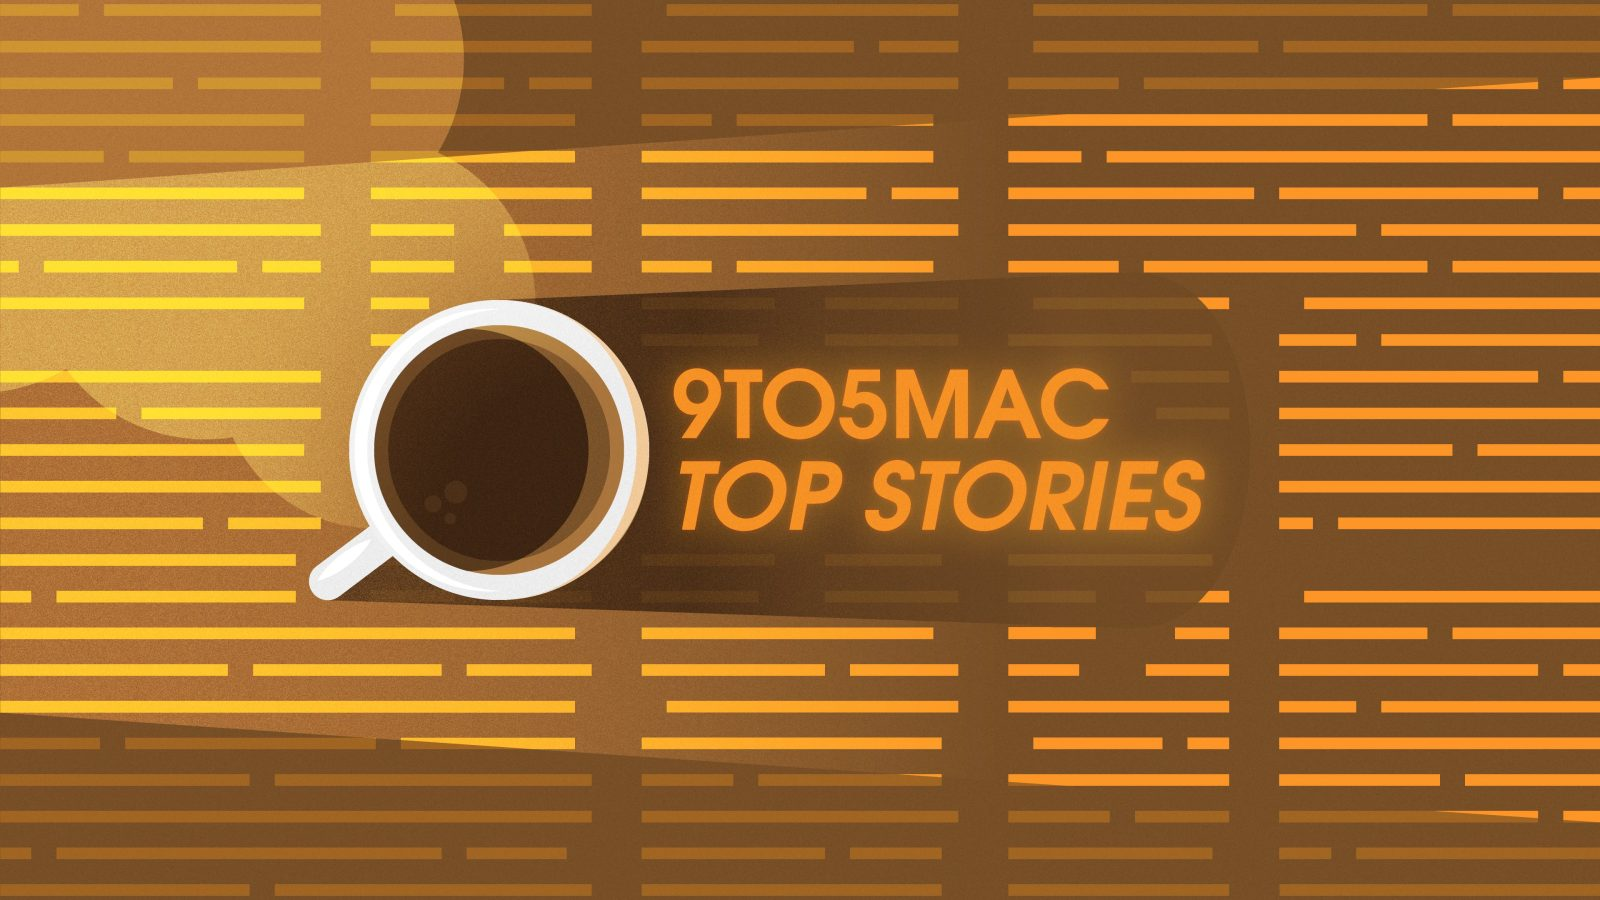 This week's top stories: macOS Catalina release, Apple AR headset, Instagram Dark Mode, more